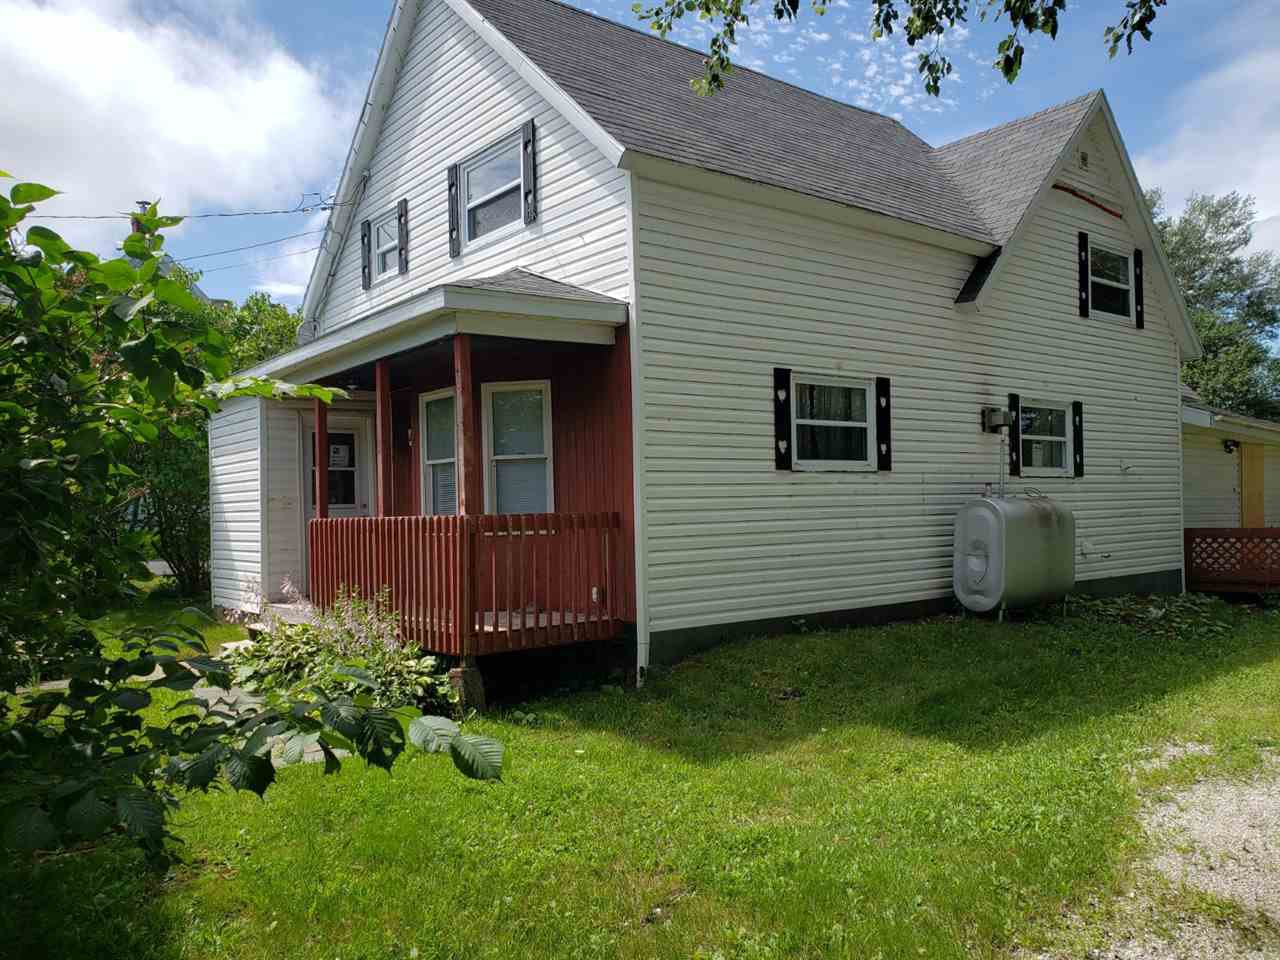 Main Photo: 4 Queen Street in Sydney Mines: 205-North Sydney Residential for sale (Cape Breton)  : MLS®# 202015153